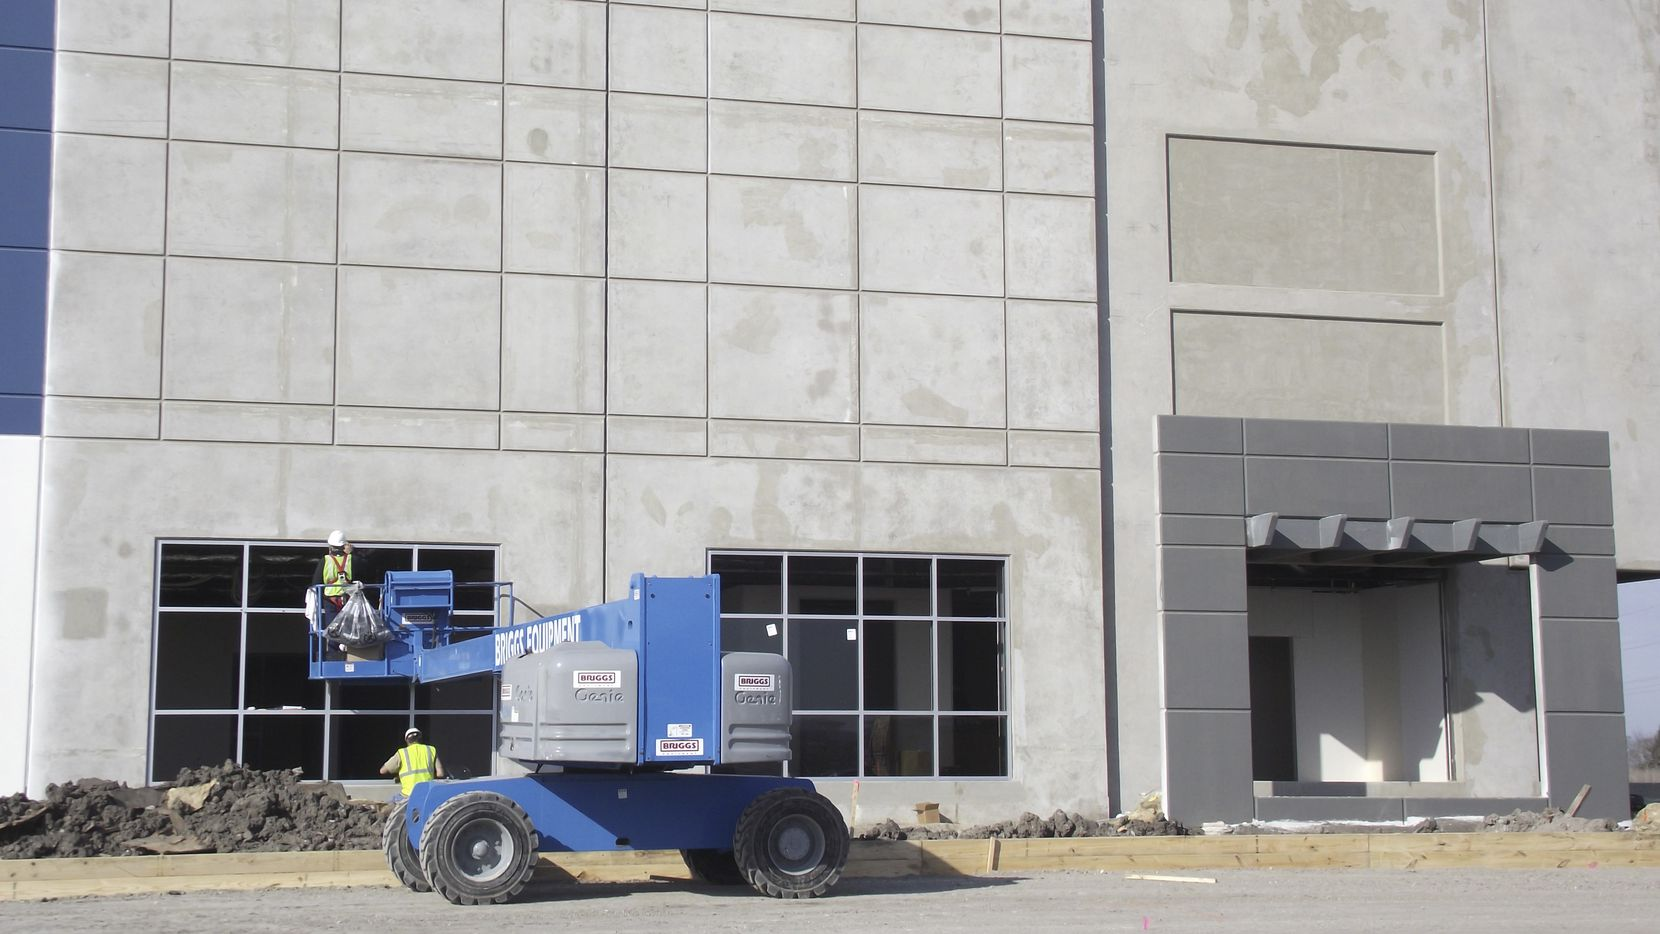 More than 17 million square feet of warehouse space is being built in North Texas.